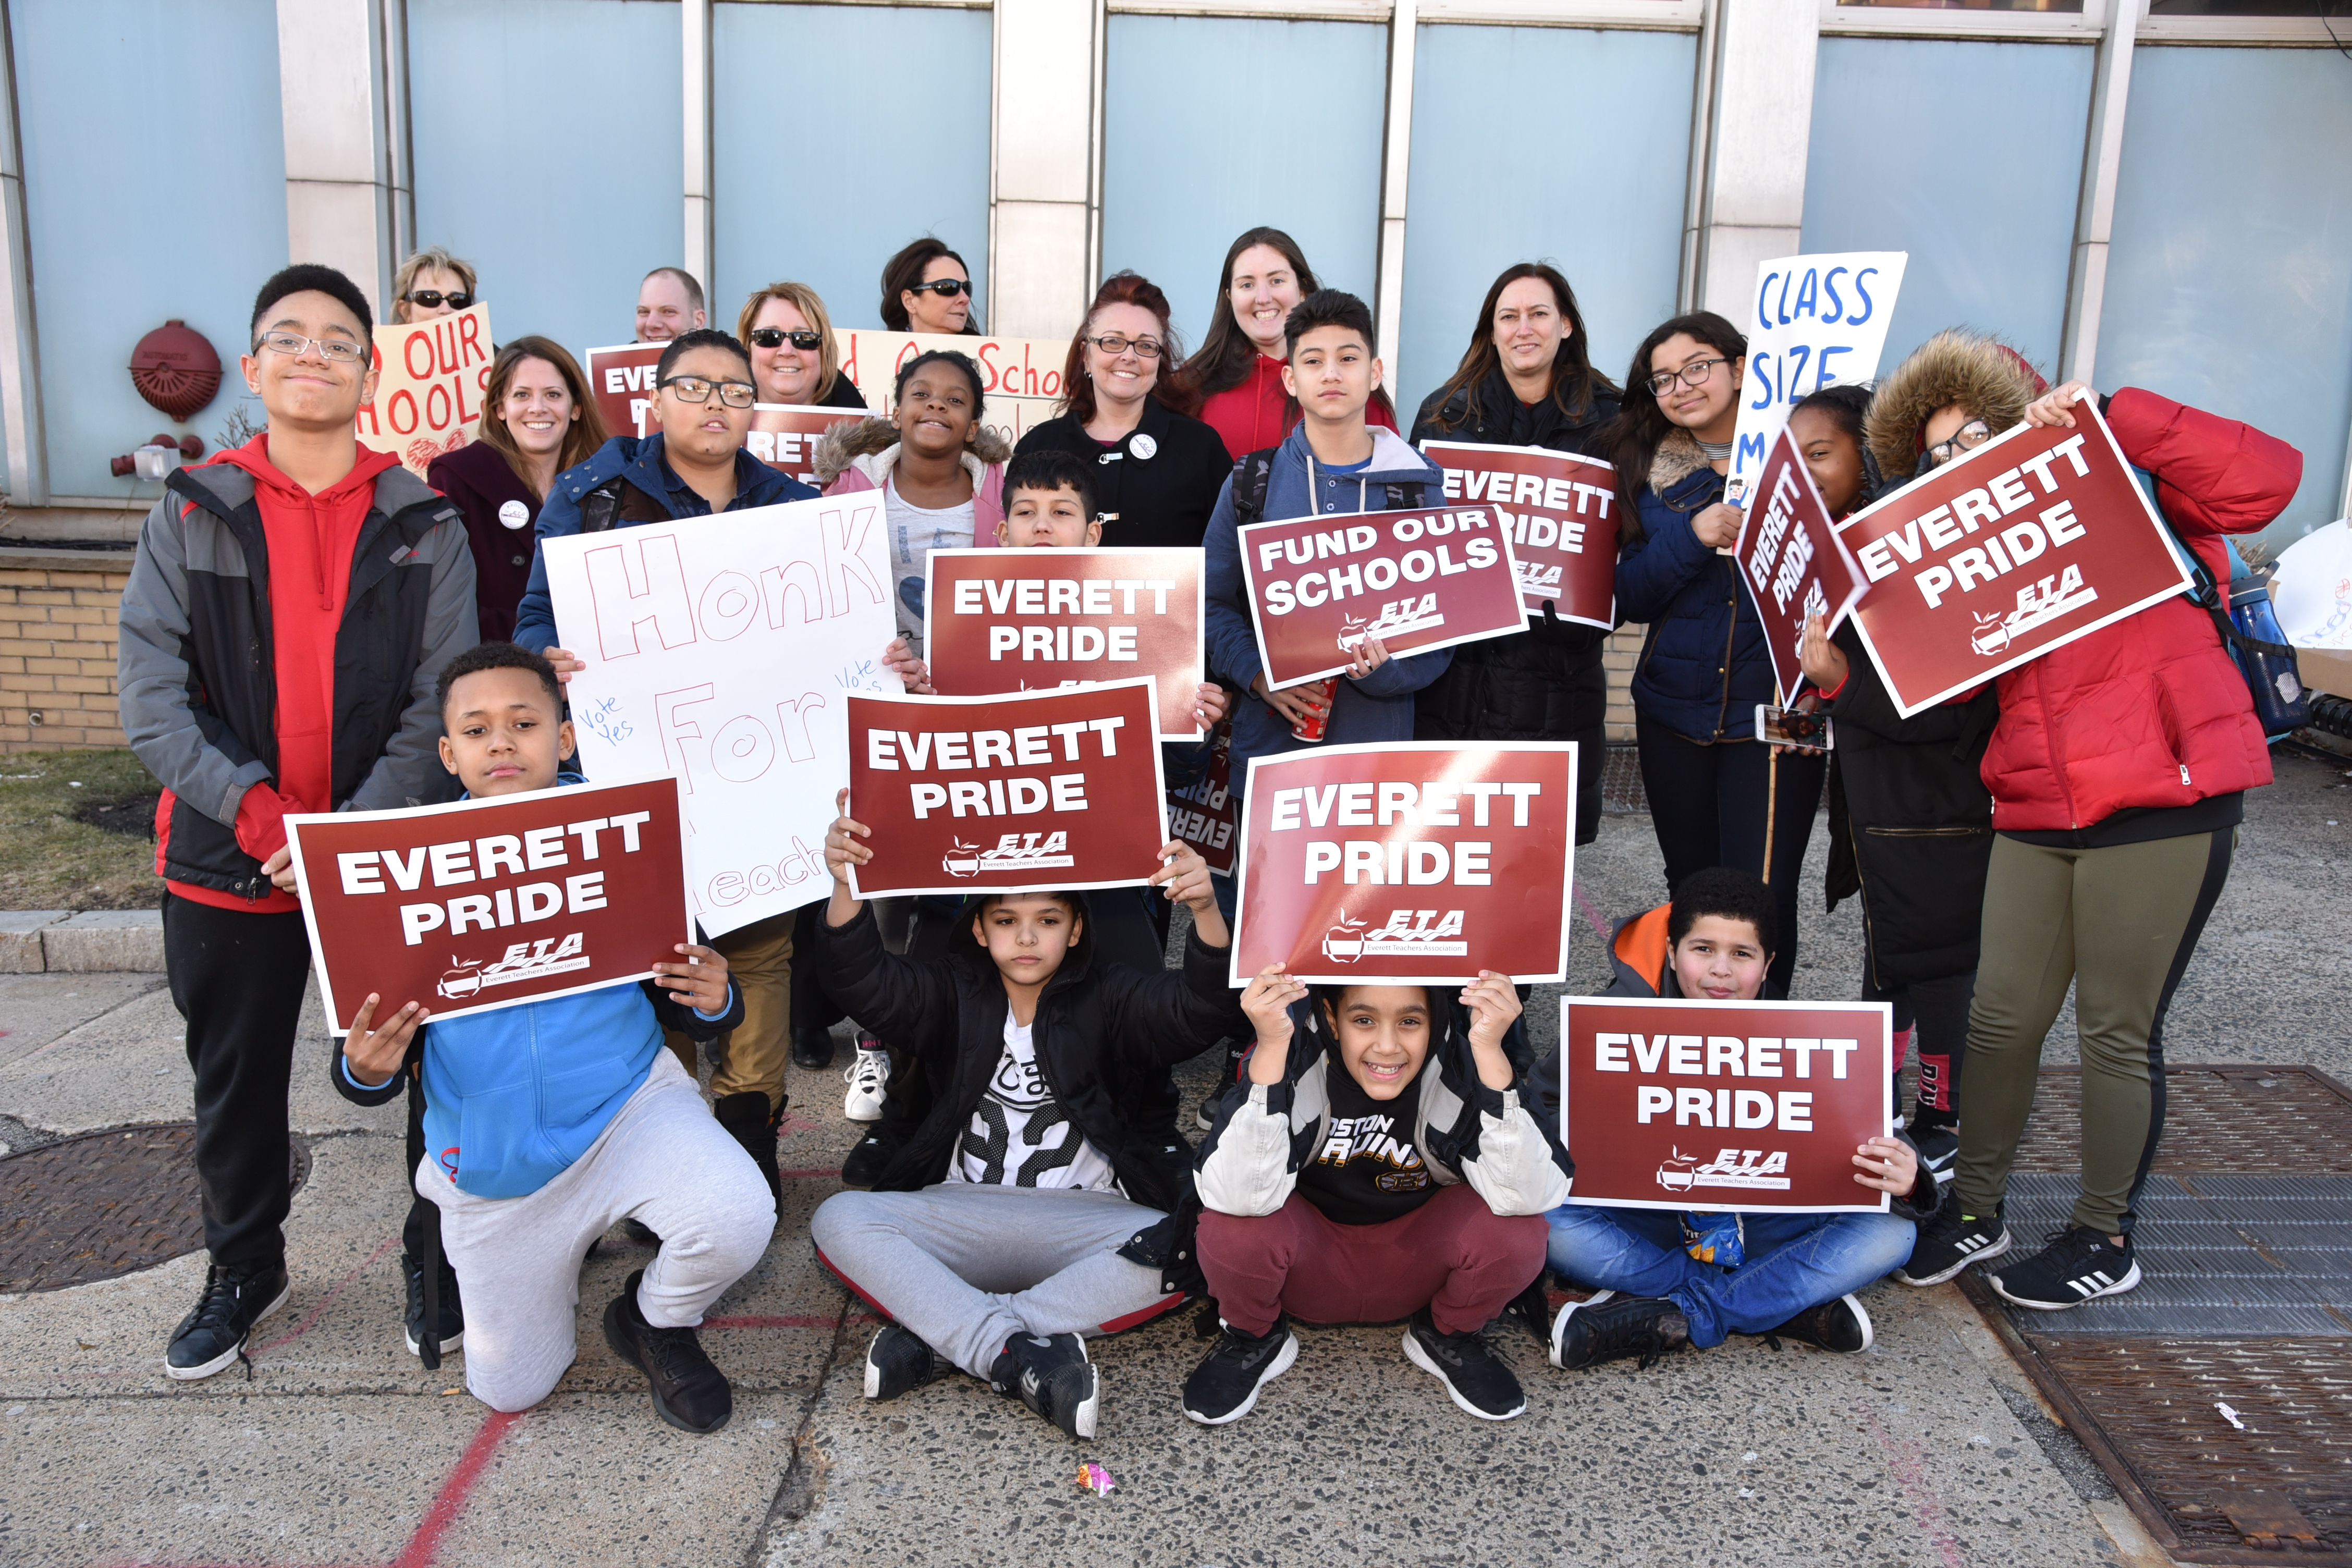 Everett Teachers' Association President Kim Auger is shown with students and teachers during a rally outside city hall Monday in support of the 110 school employees facing layoffs.